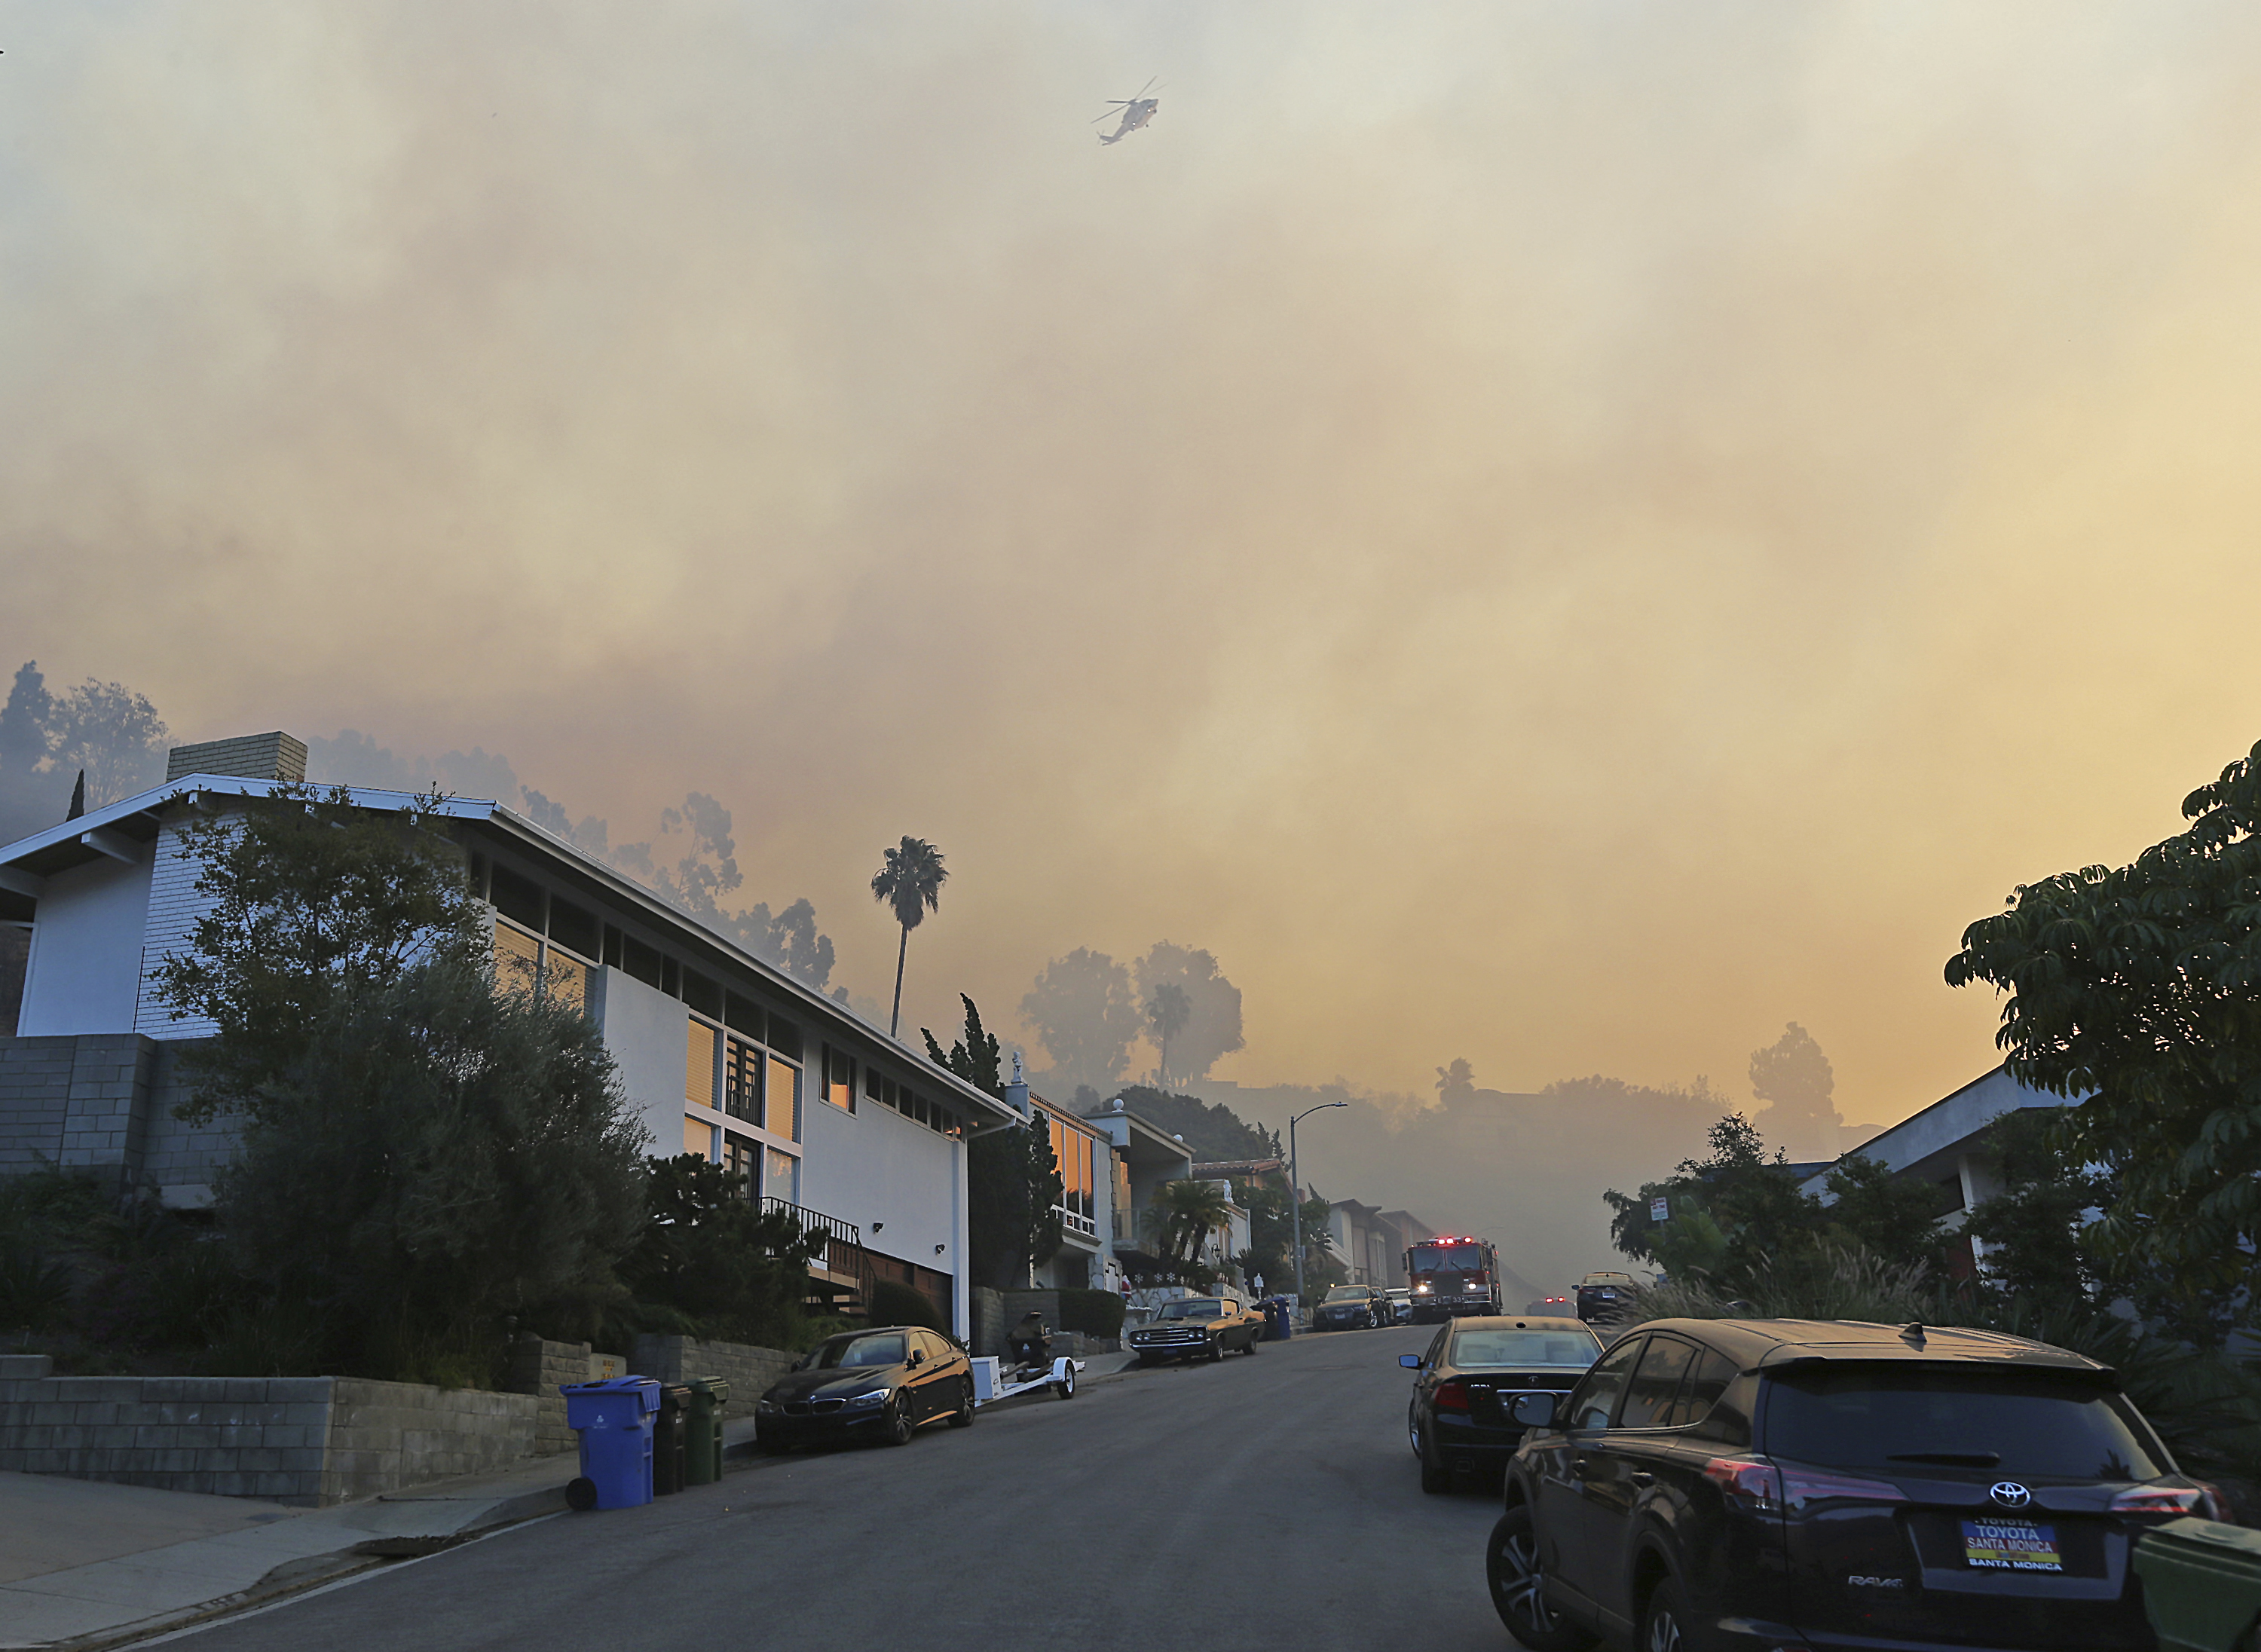 <div class='meta'><div class='origin-logo' data-origin='none'></div><span class='caption-text' data-credit='Reed Saxon/AP Photo'>Firefighters station engines on Bel Terrace and a helicopter prepares to make a water drop as the Skirball wildfire threatens the Bel Air district of Los Angeles, Dec. 6, 2017.</span></div>